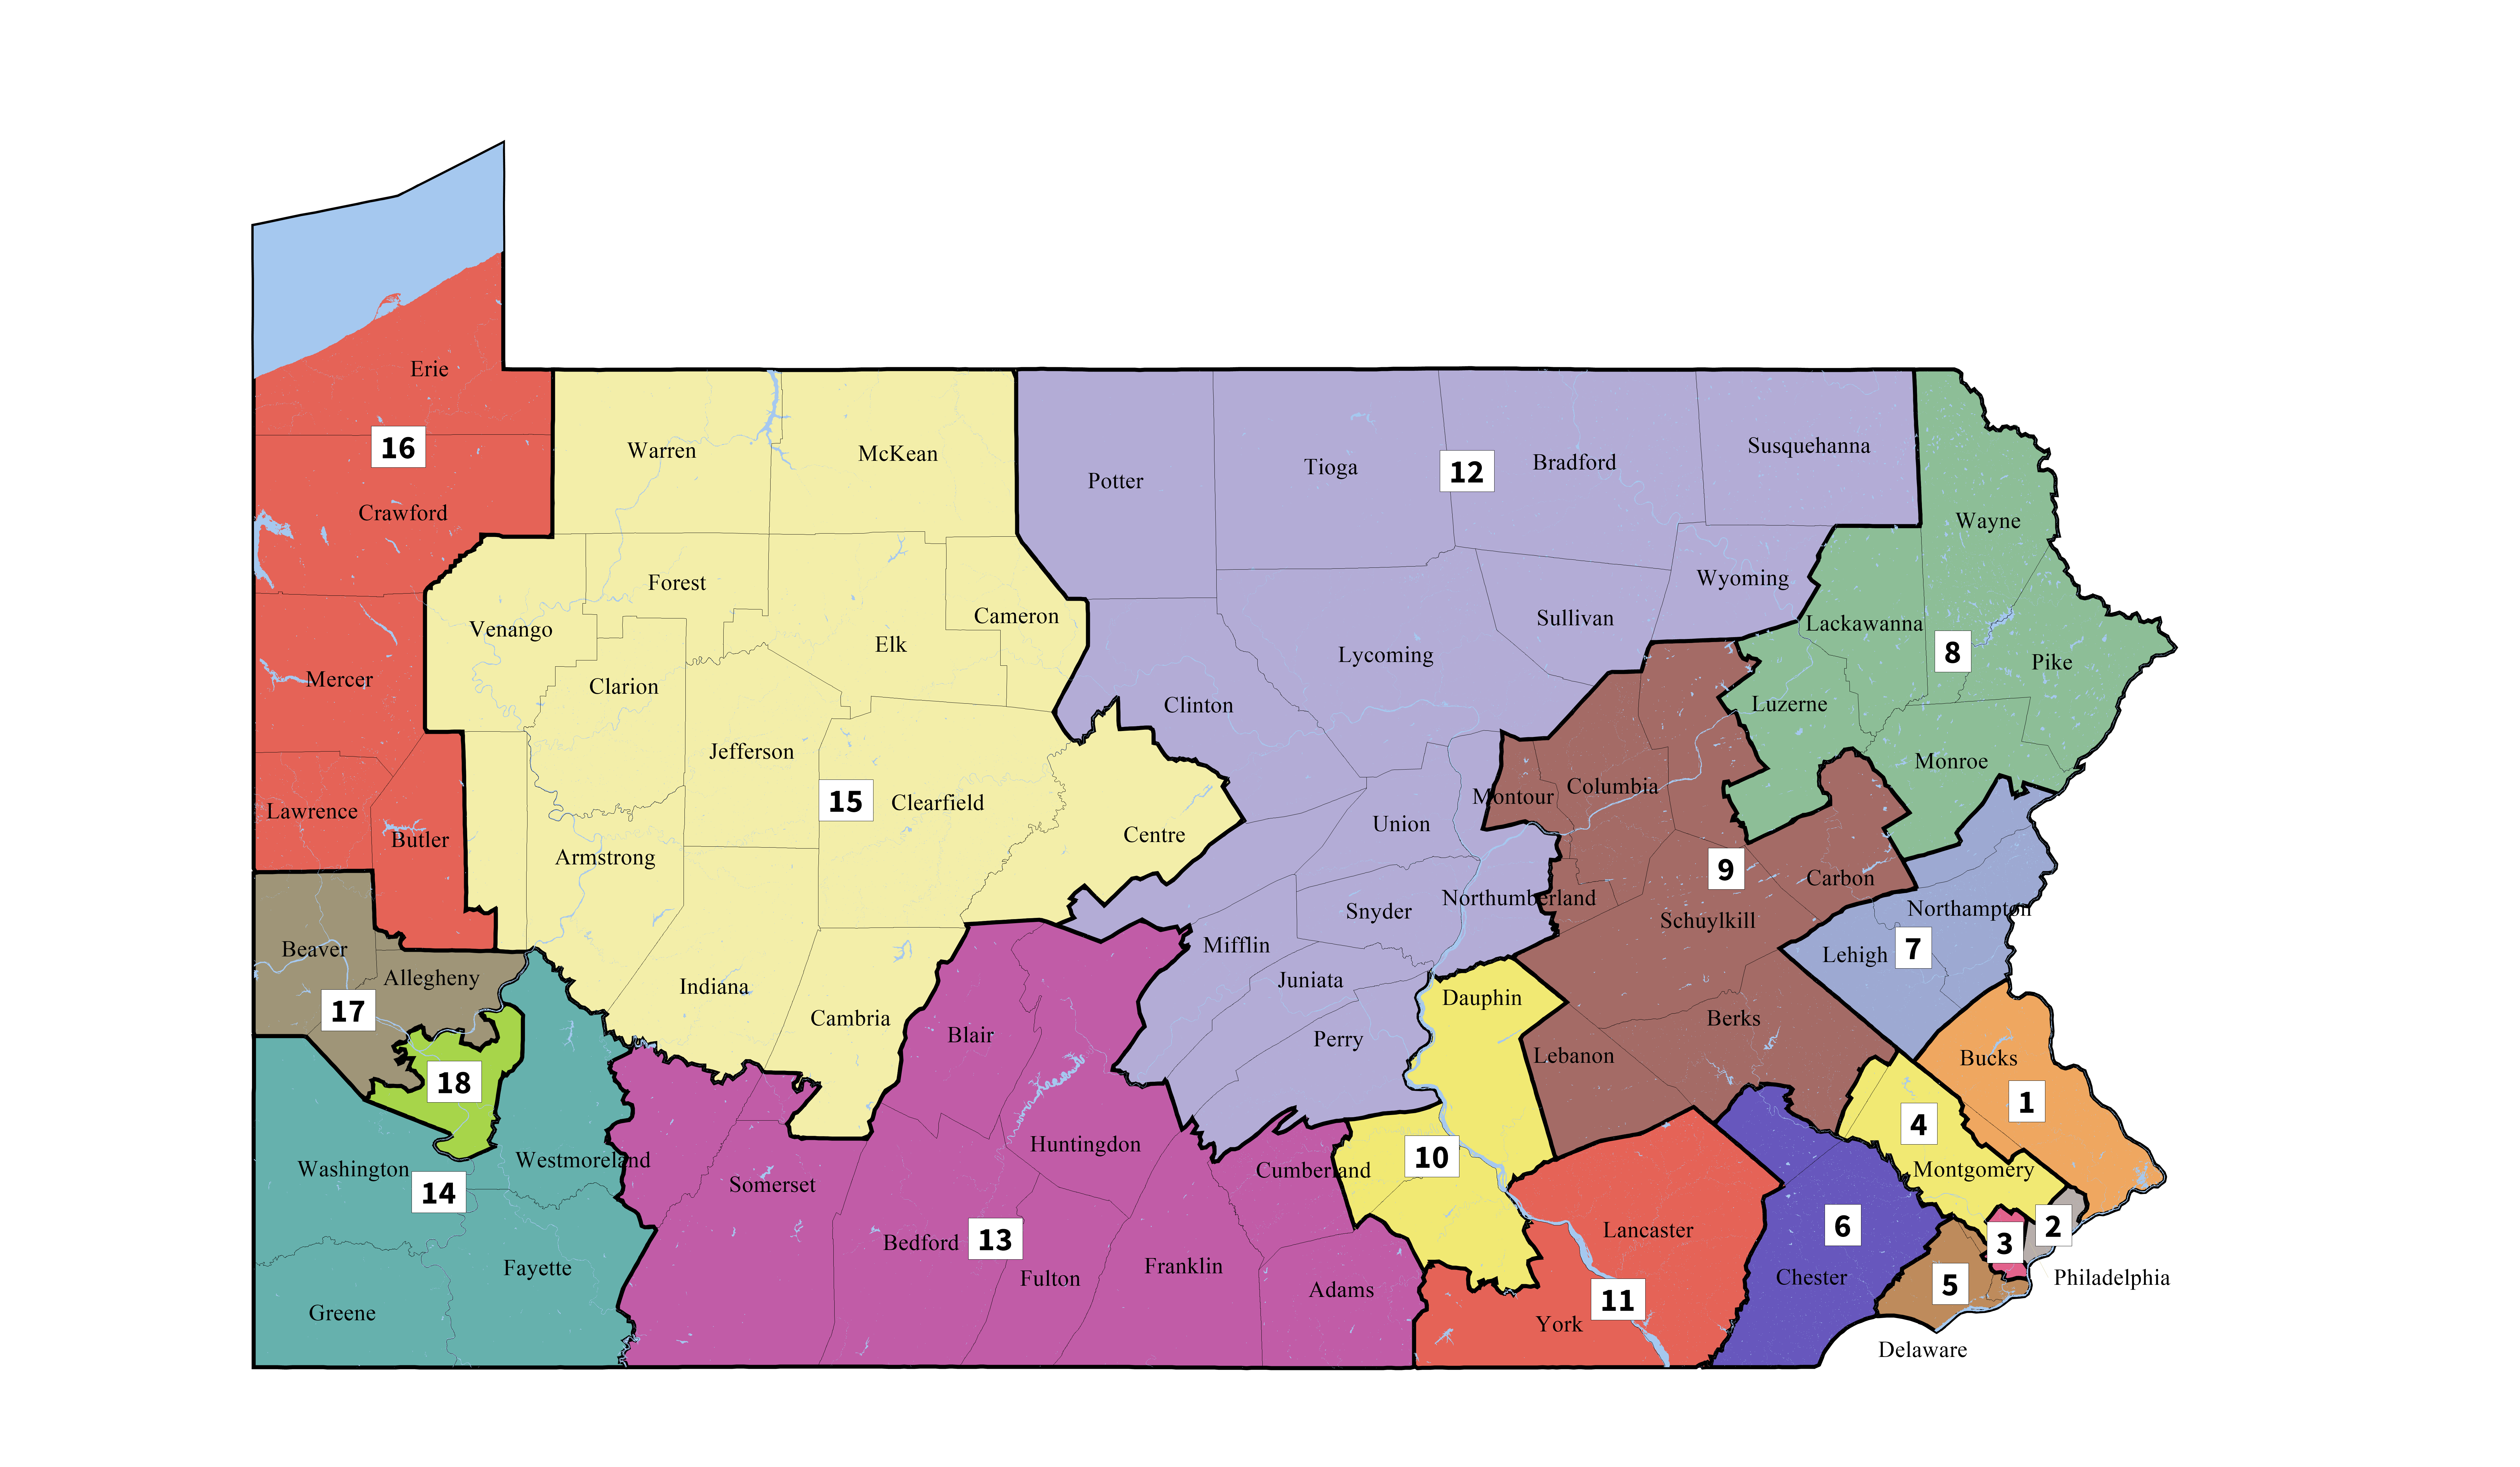 New map of Pennsylvania congressional districts